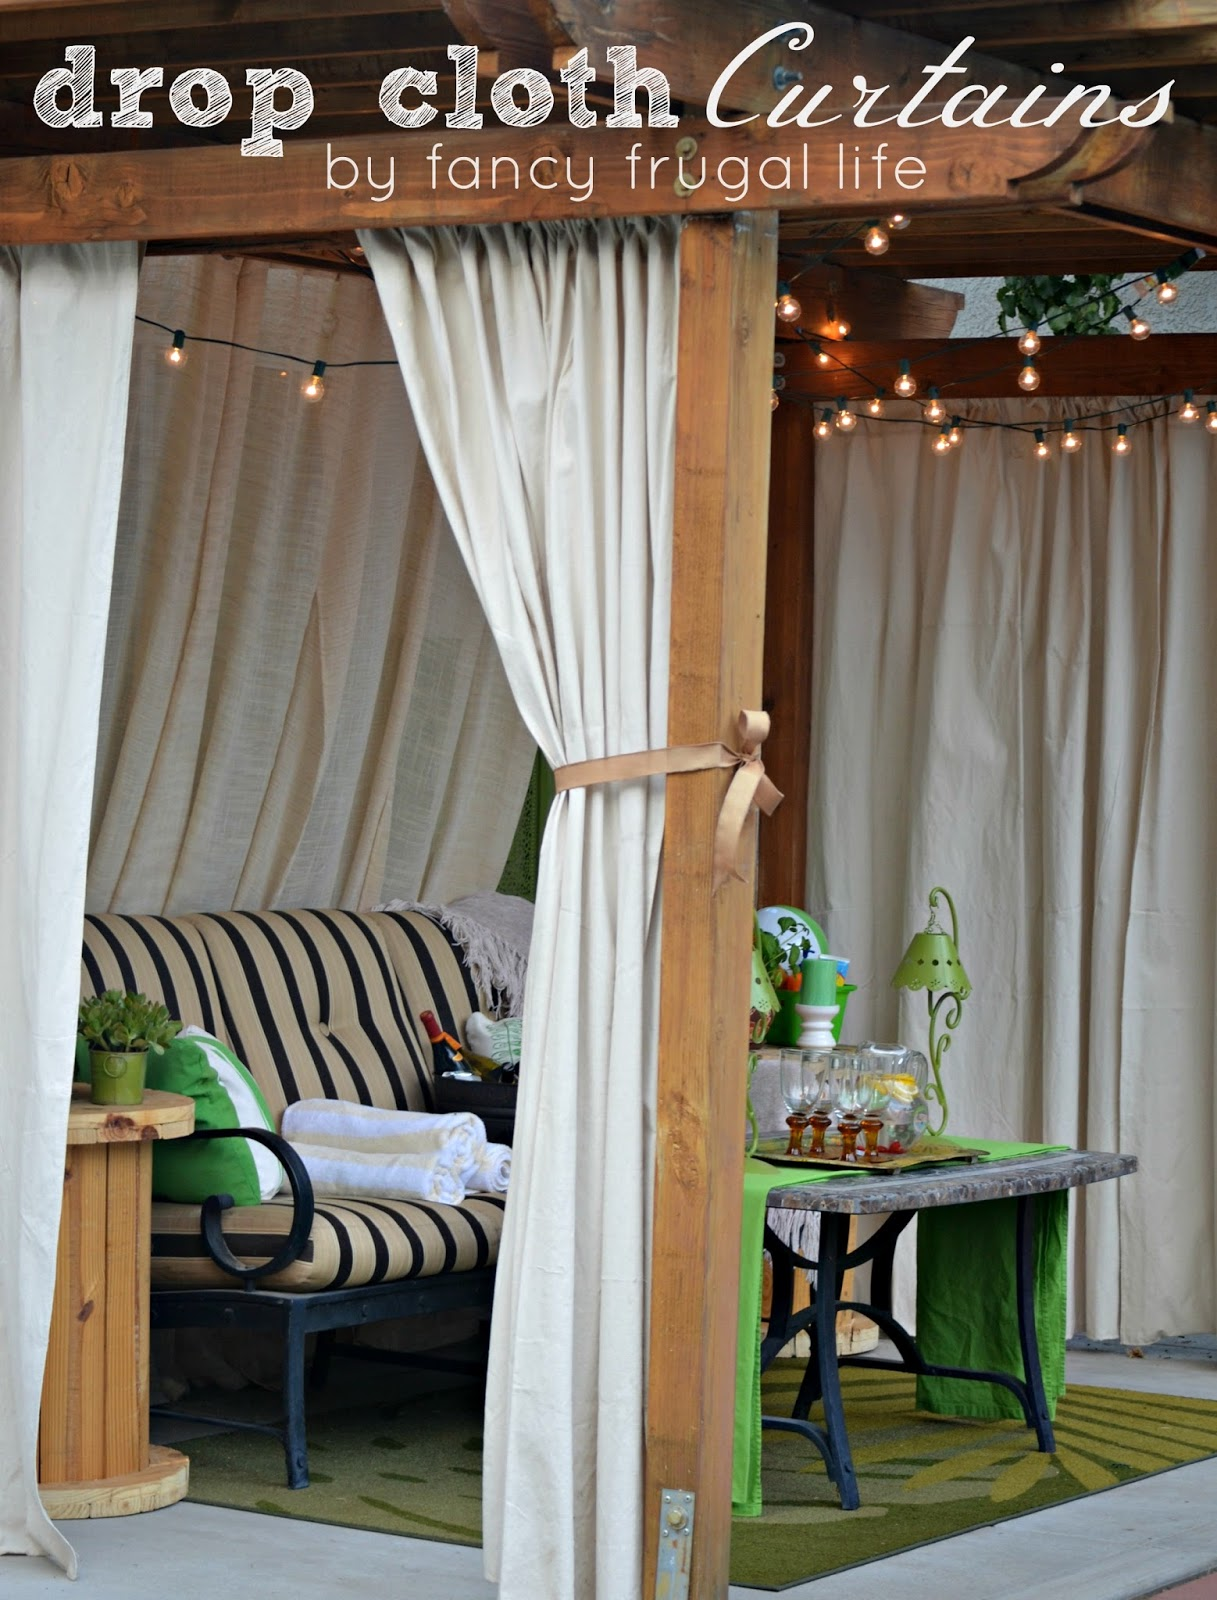 A New Pergola on the Deck! from Thrifty Decor Chick